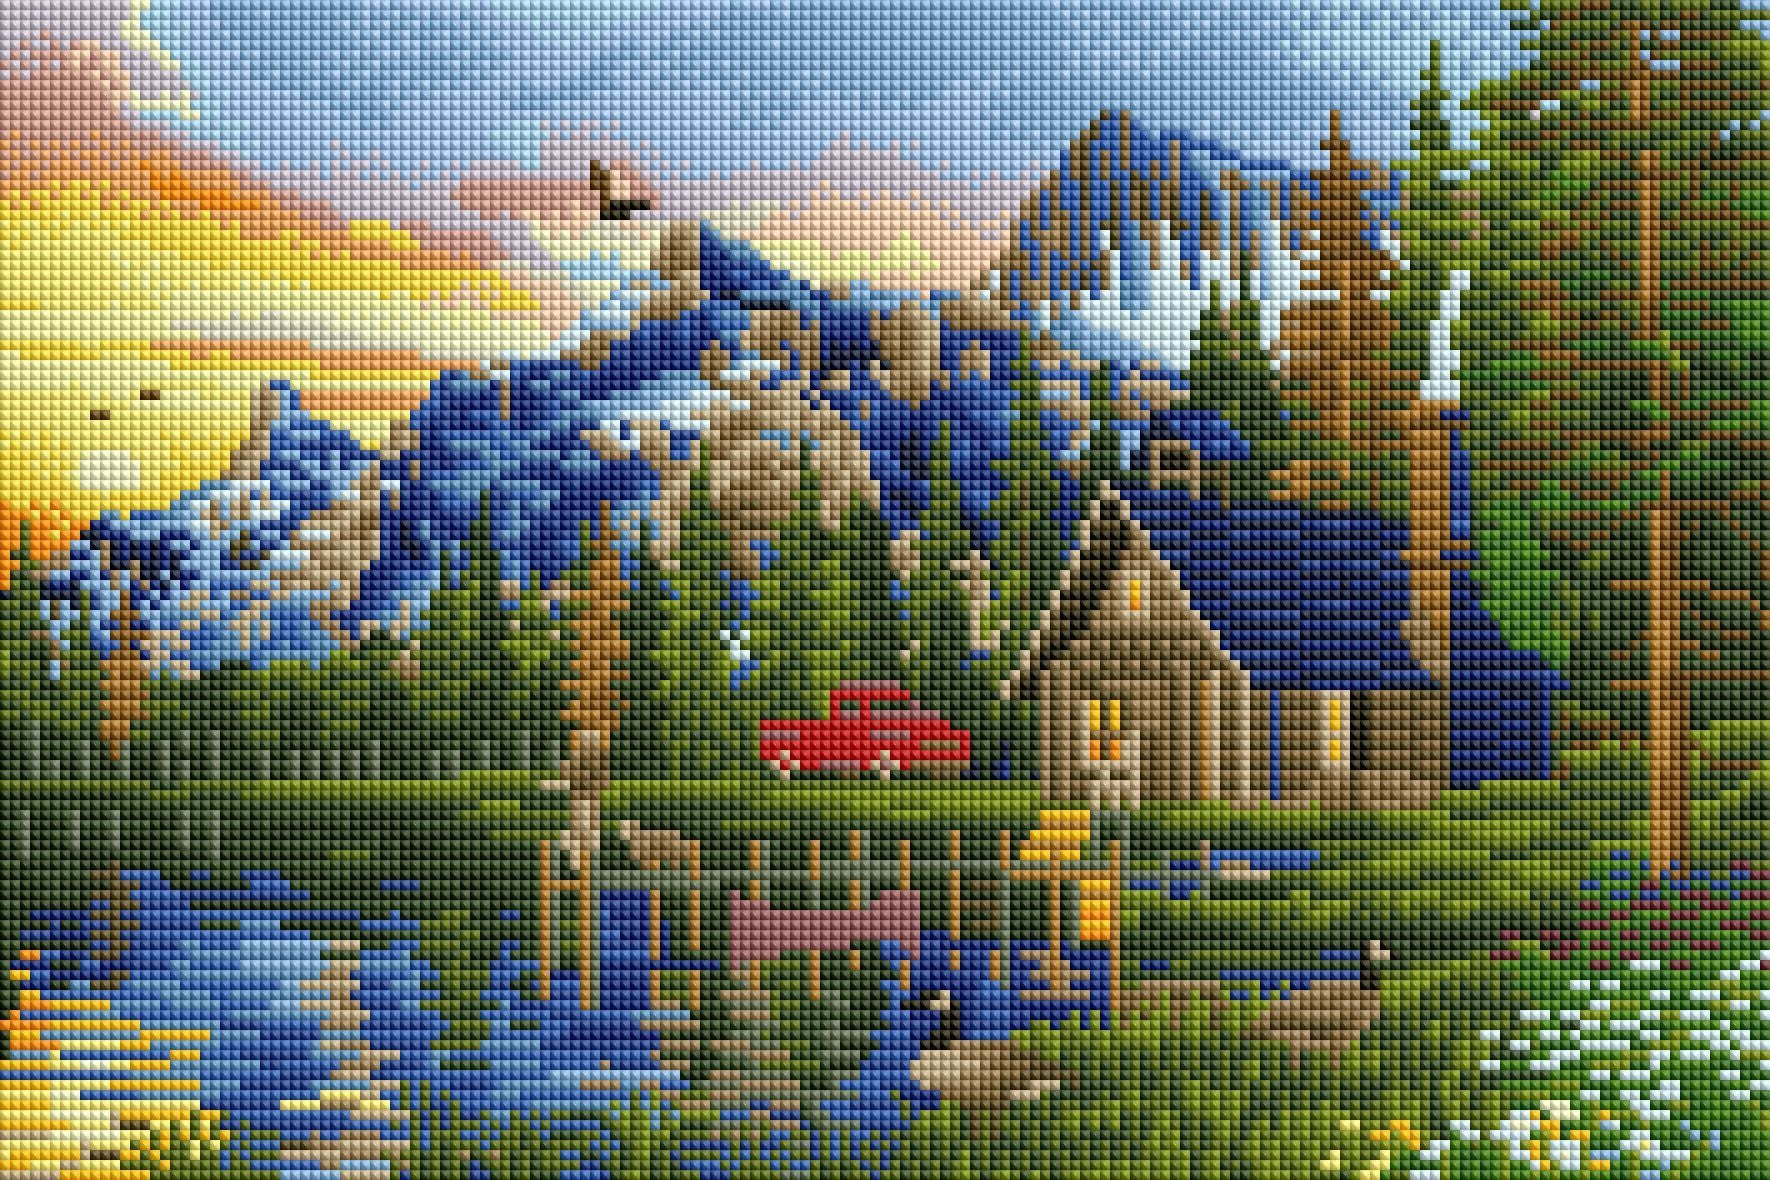 sunset log cabin diamond painting rendering preview by create love share